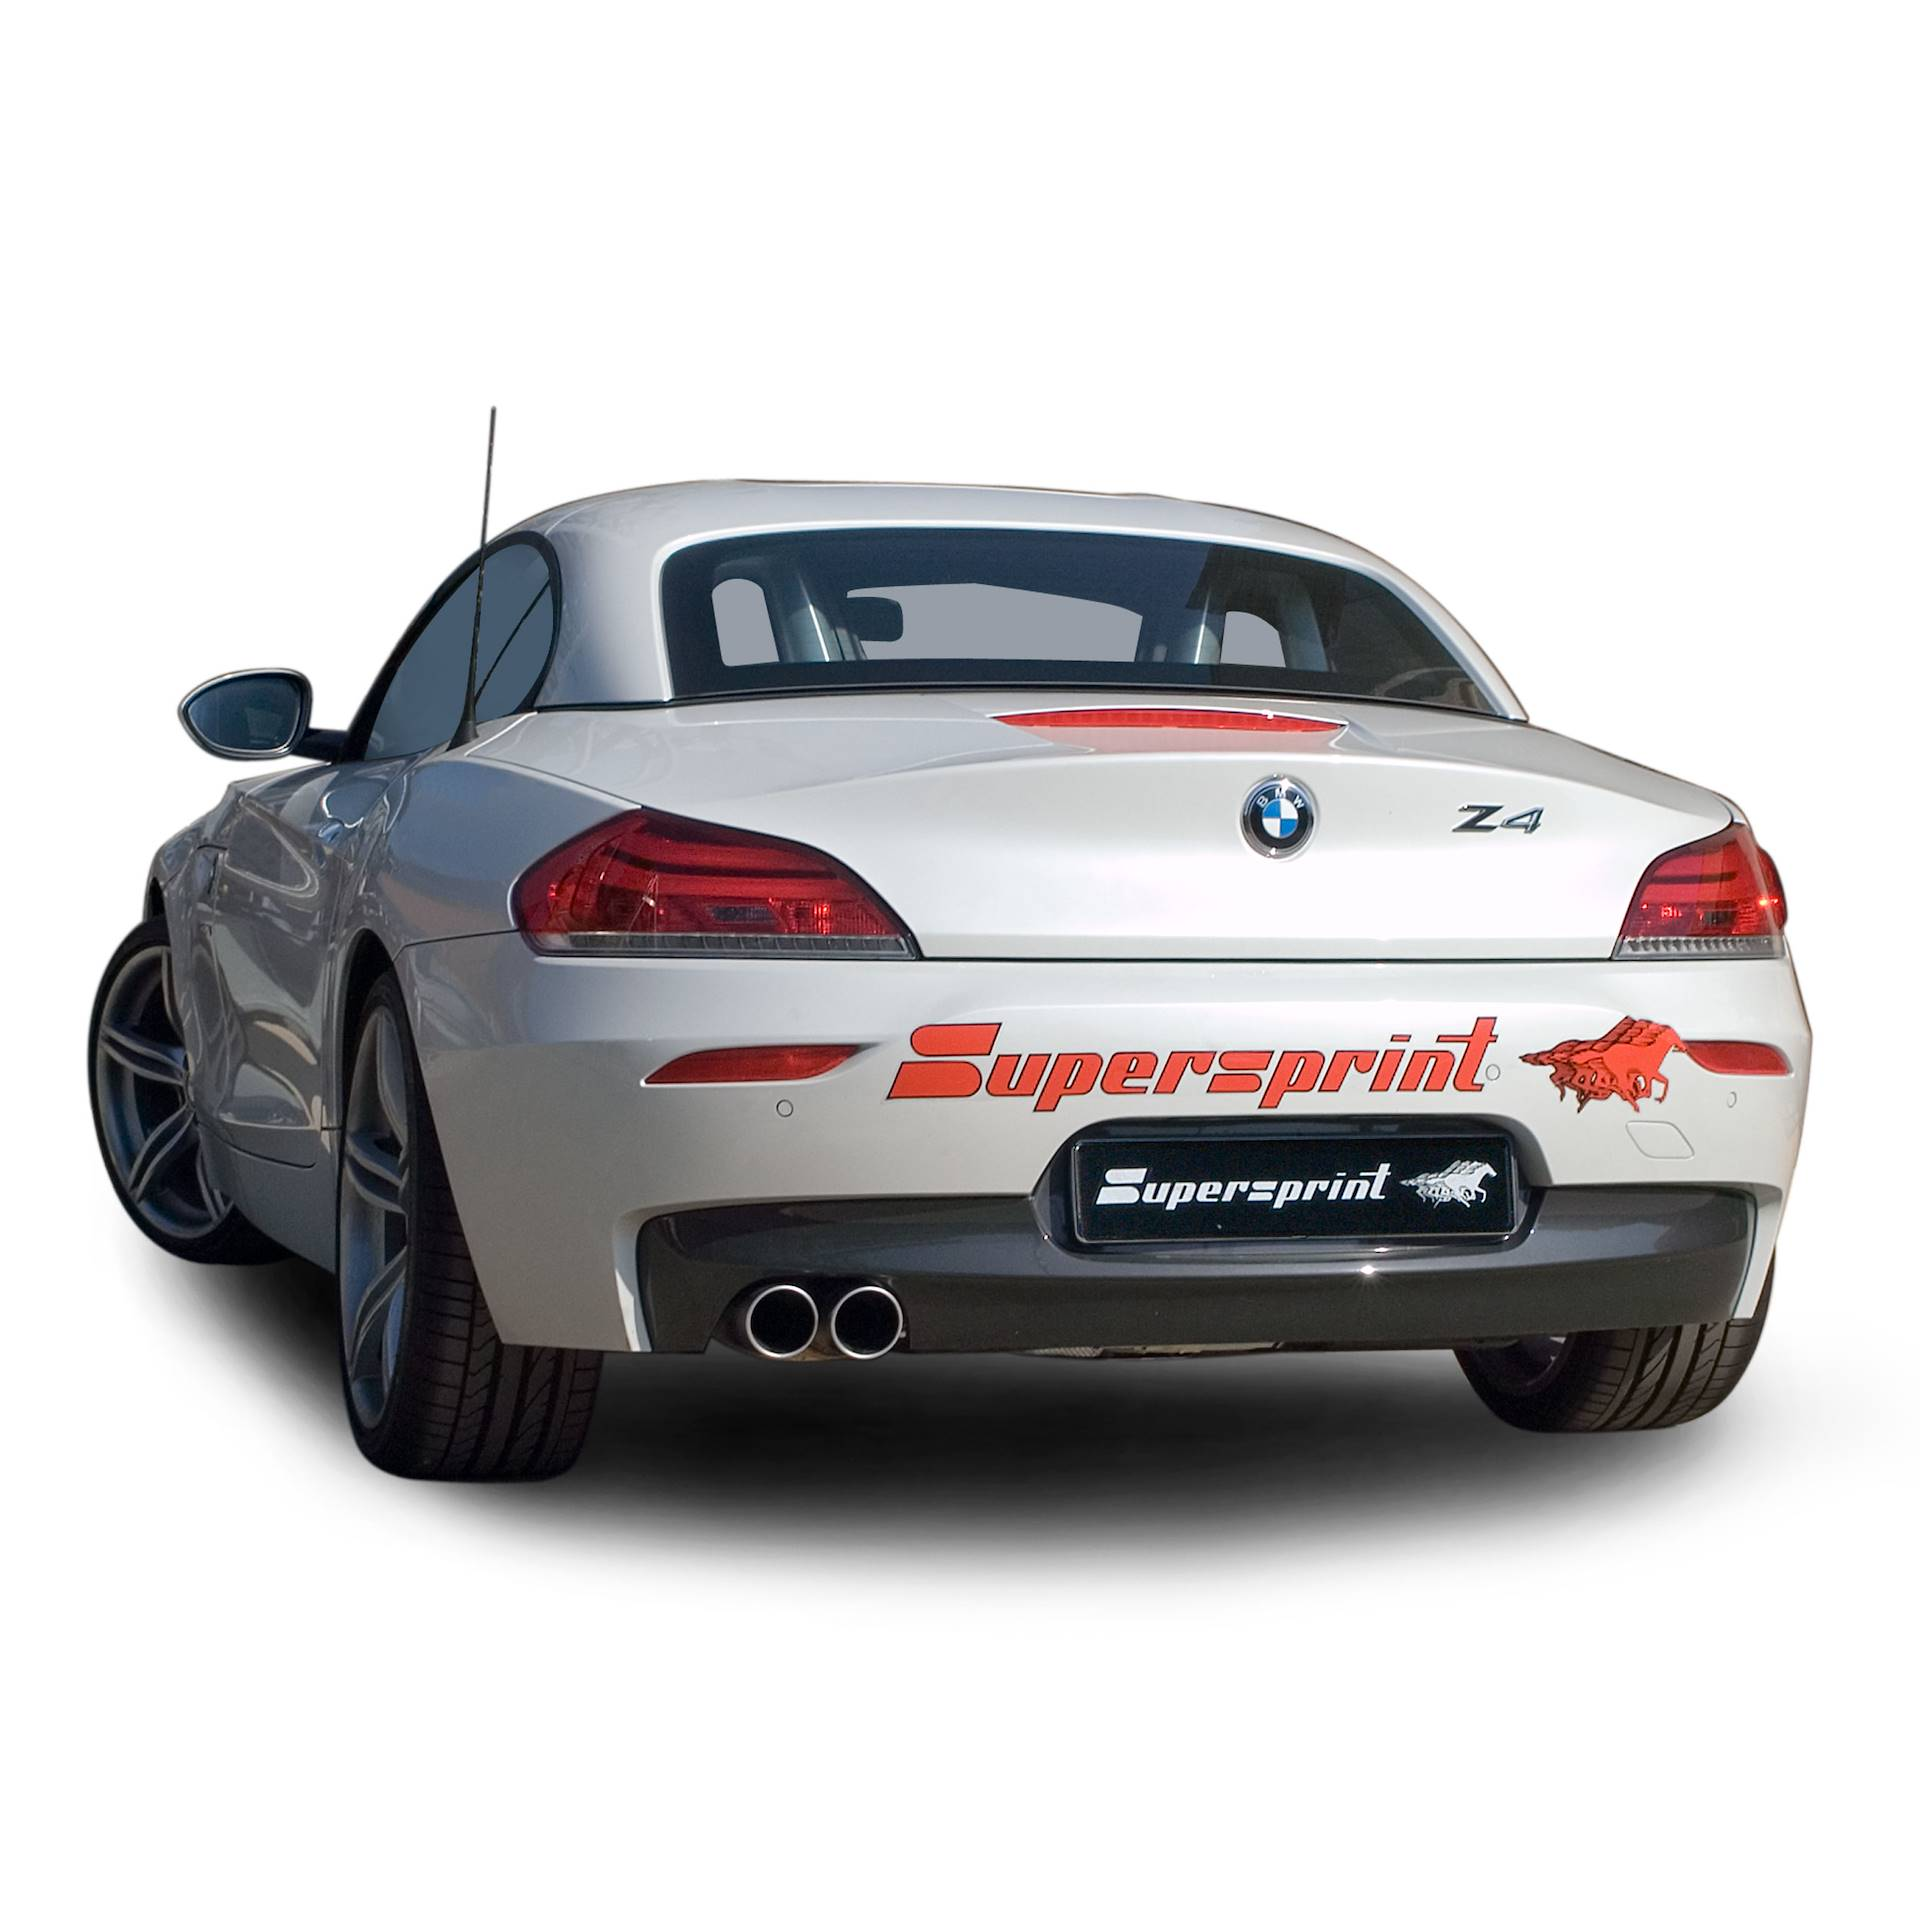 full exhaust system for bmw z4 28i 2012 july 23. Black Bedroom Furniture Sets. Home Design Ideas